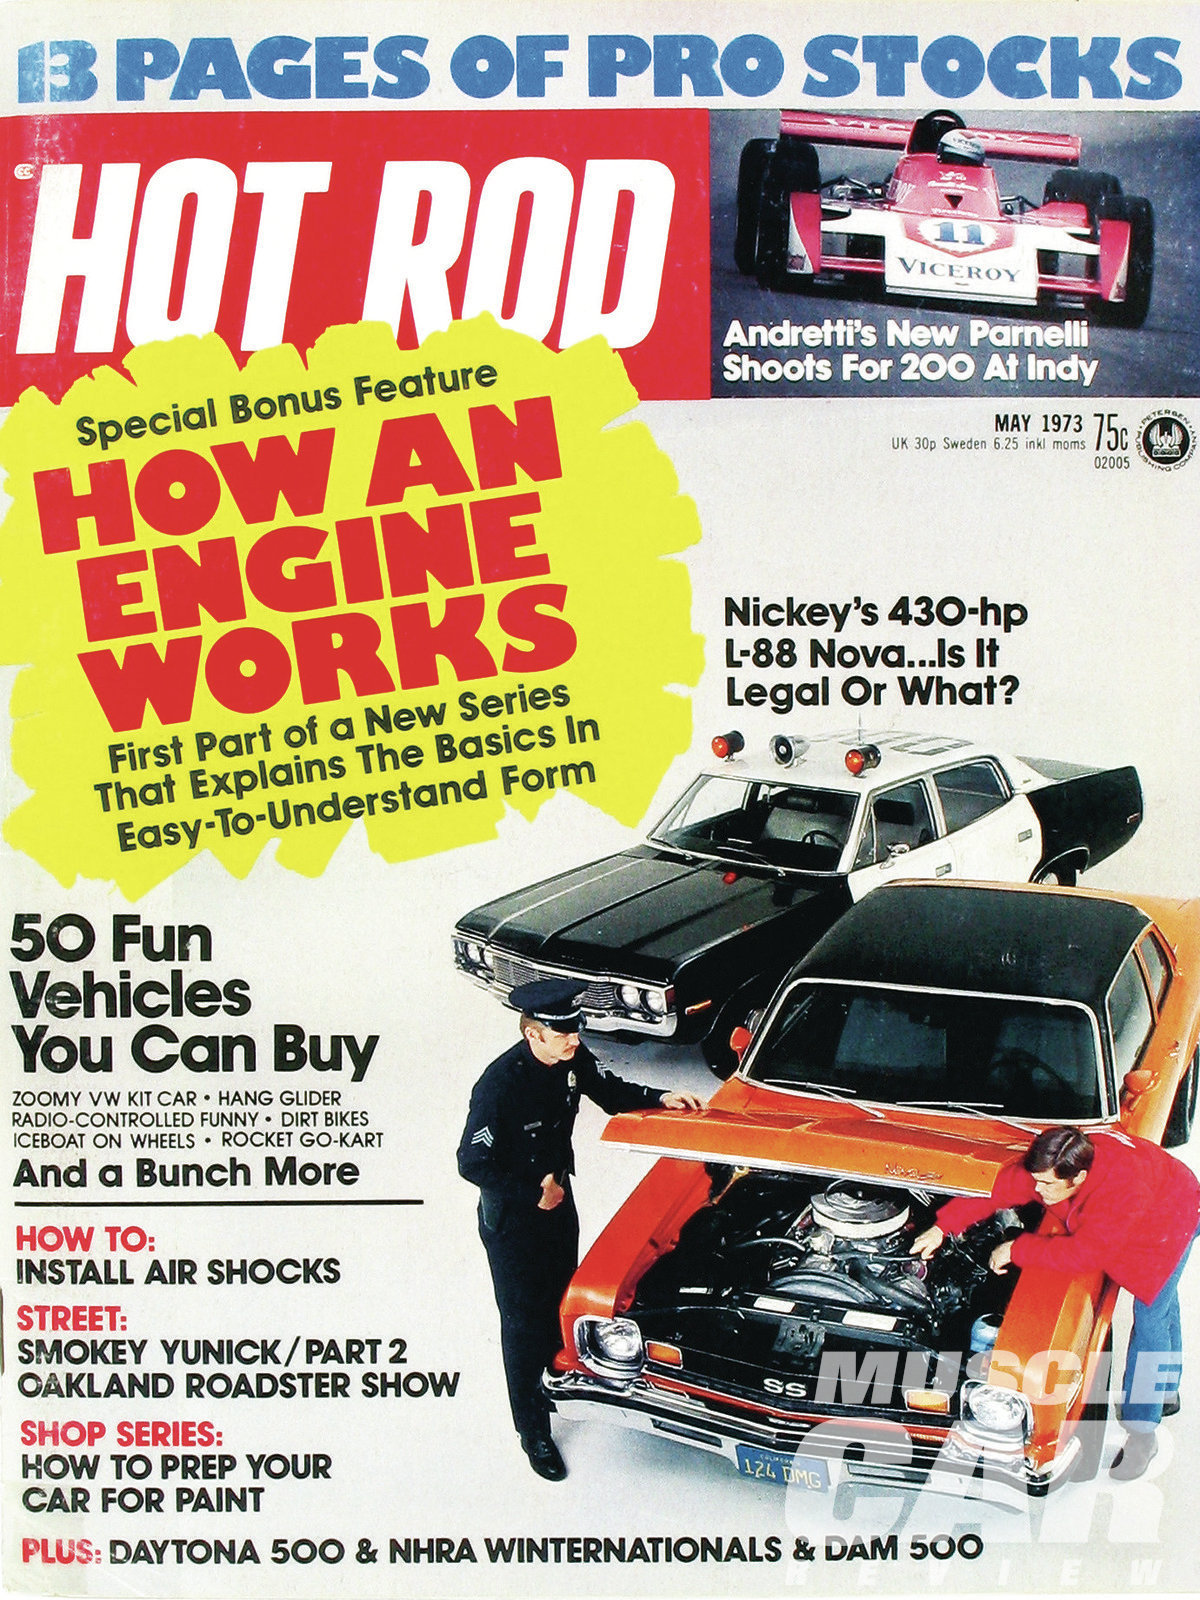 The Nickey-converted Nova on the cover of the May 1973 issue of Hot Rod magazine motivated the original owner of our '74 Camaro LT to get his own Super Car conversion from Nickey Chevrolet.